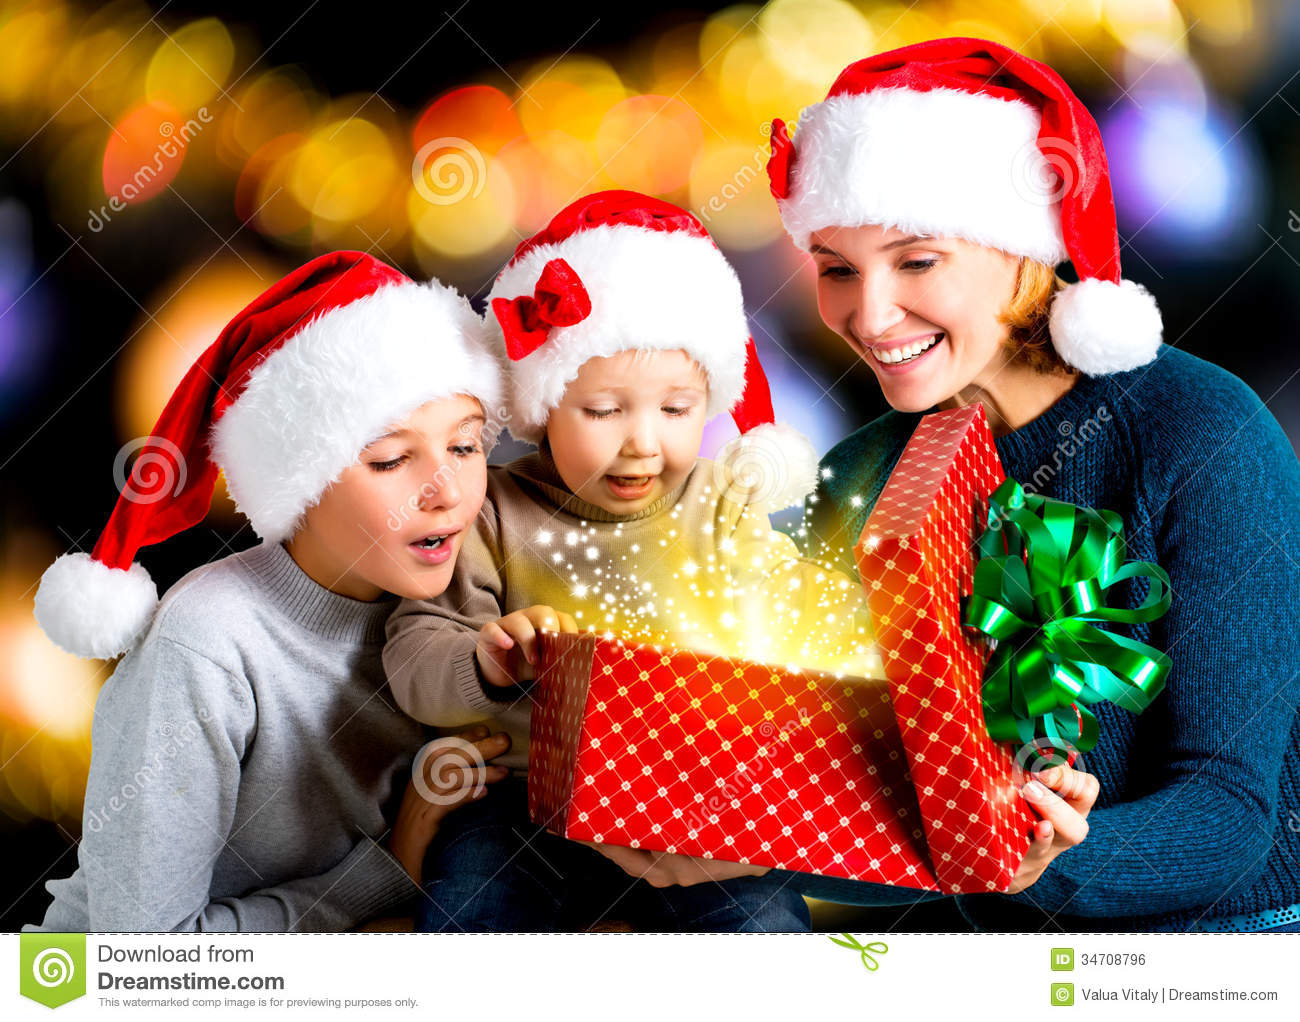 Free Christmas Gifts For Kids | Division of Global Affairs